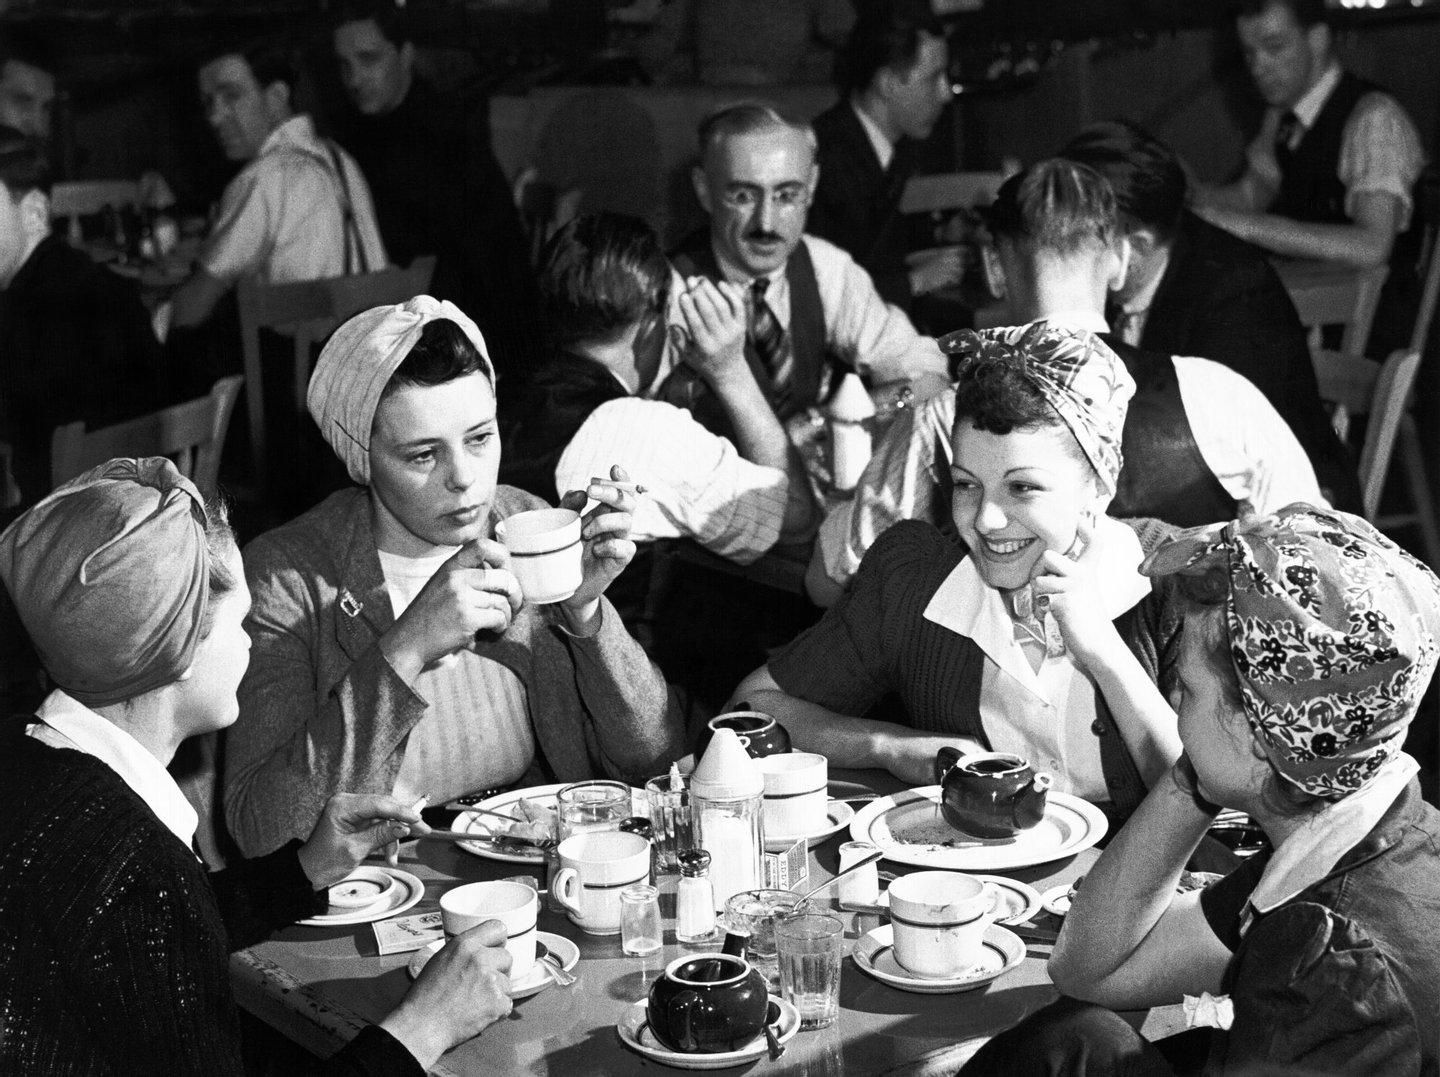 In the foreground, a group of four women, each wearing a working head scarf, are having lunch, smiling and discussing, while other male workers are doing the same in the background of a factory's canteen on the Canadian Home Front during World War II, Canada, 1944. Photo taken during the National Film Board of Canada's production of 'When Do We Eat?'. (Photo by NFB/Getty Images)